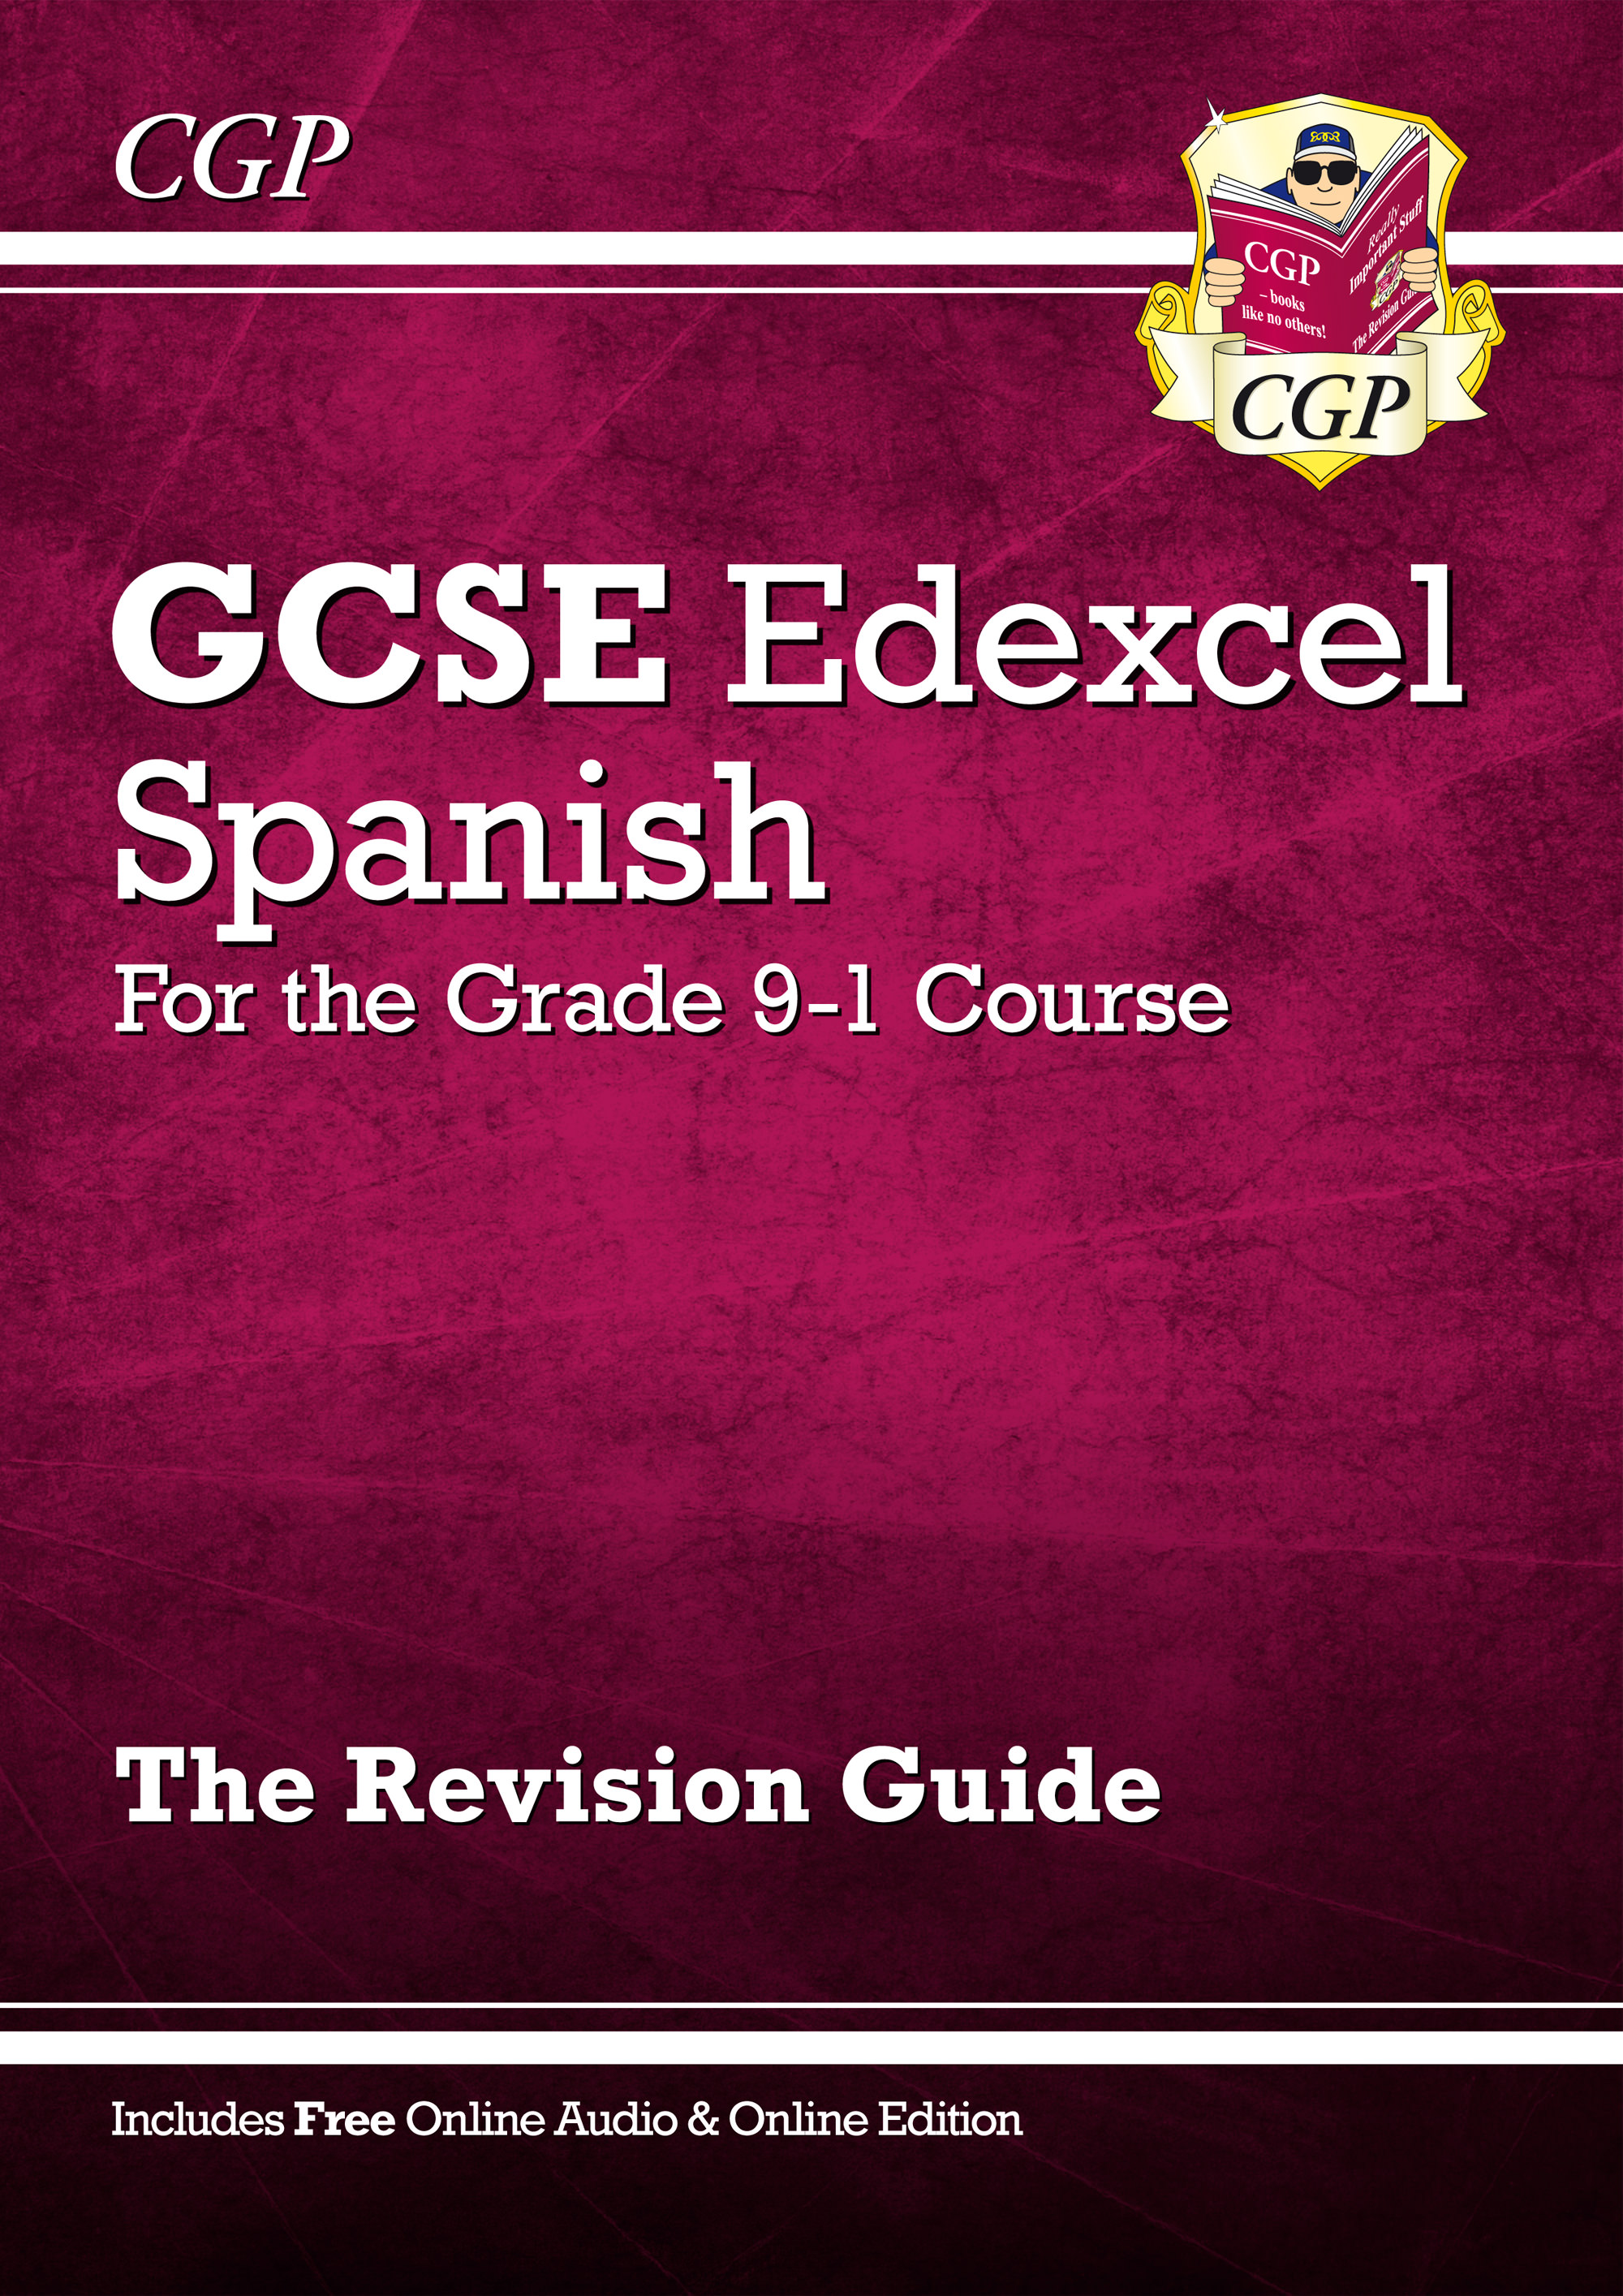 SPER41 - New GCSE Spanish Edexcel Revision Guide - for the Grade 9-1 Course (with Online Edition)